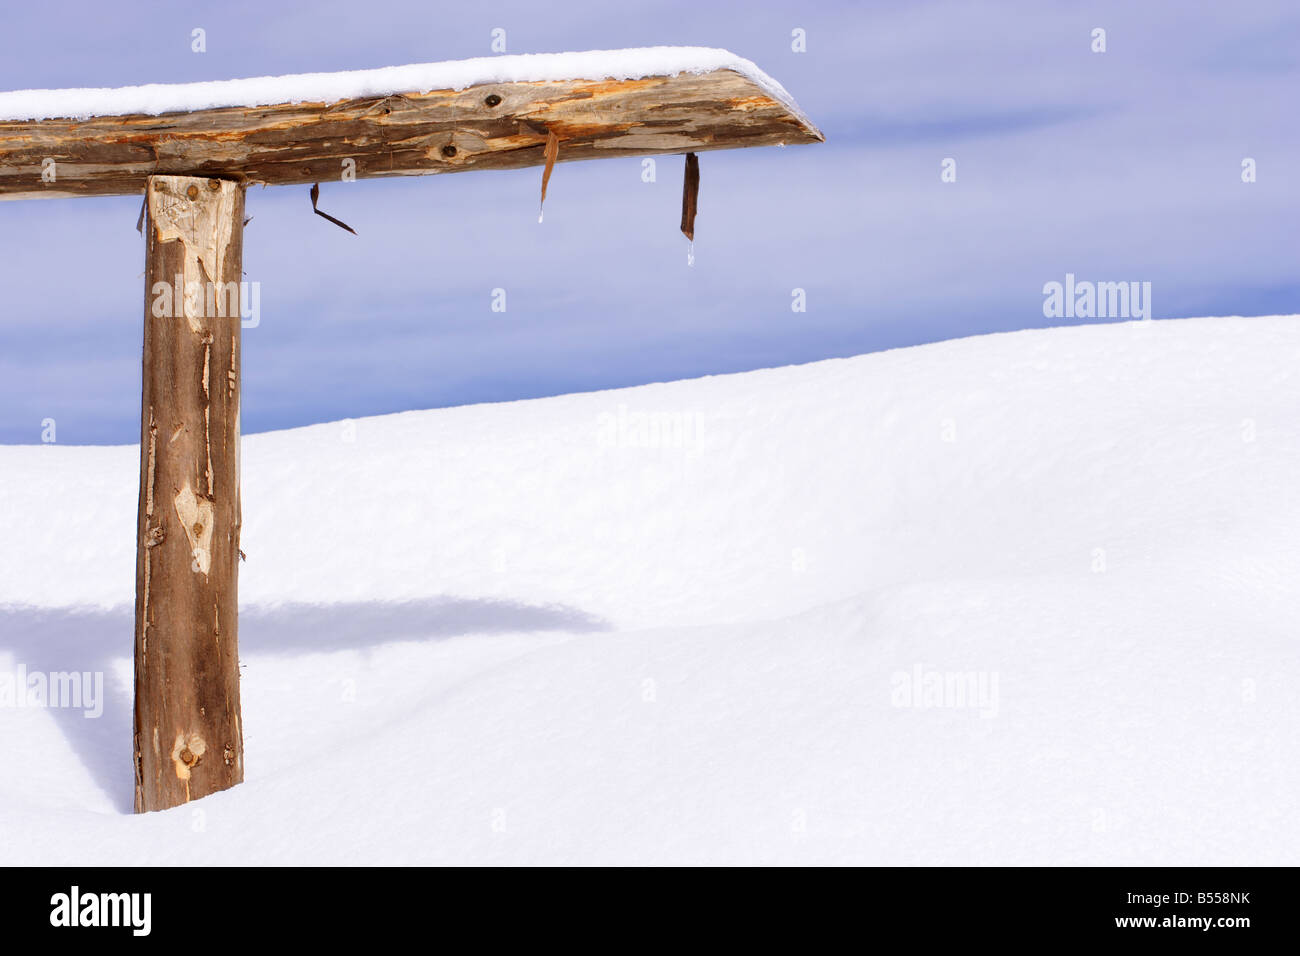 Woody fence in the snow - Stock Image